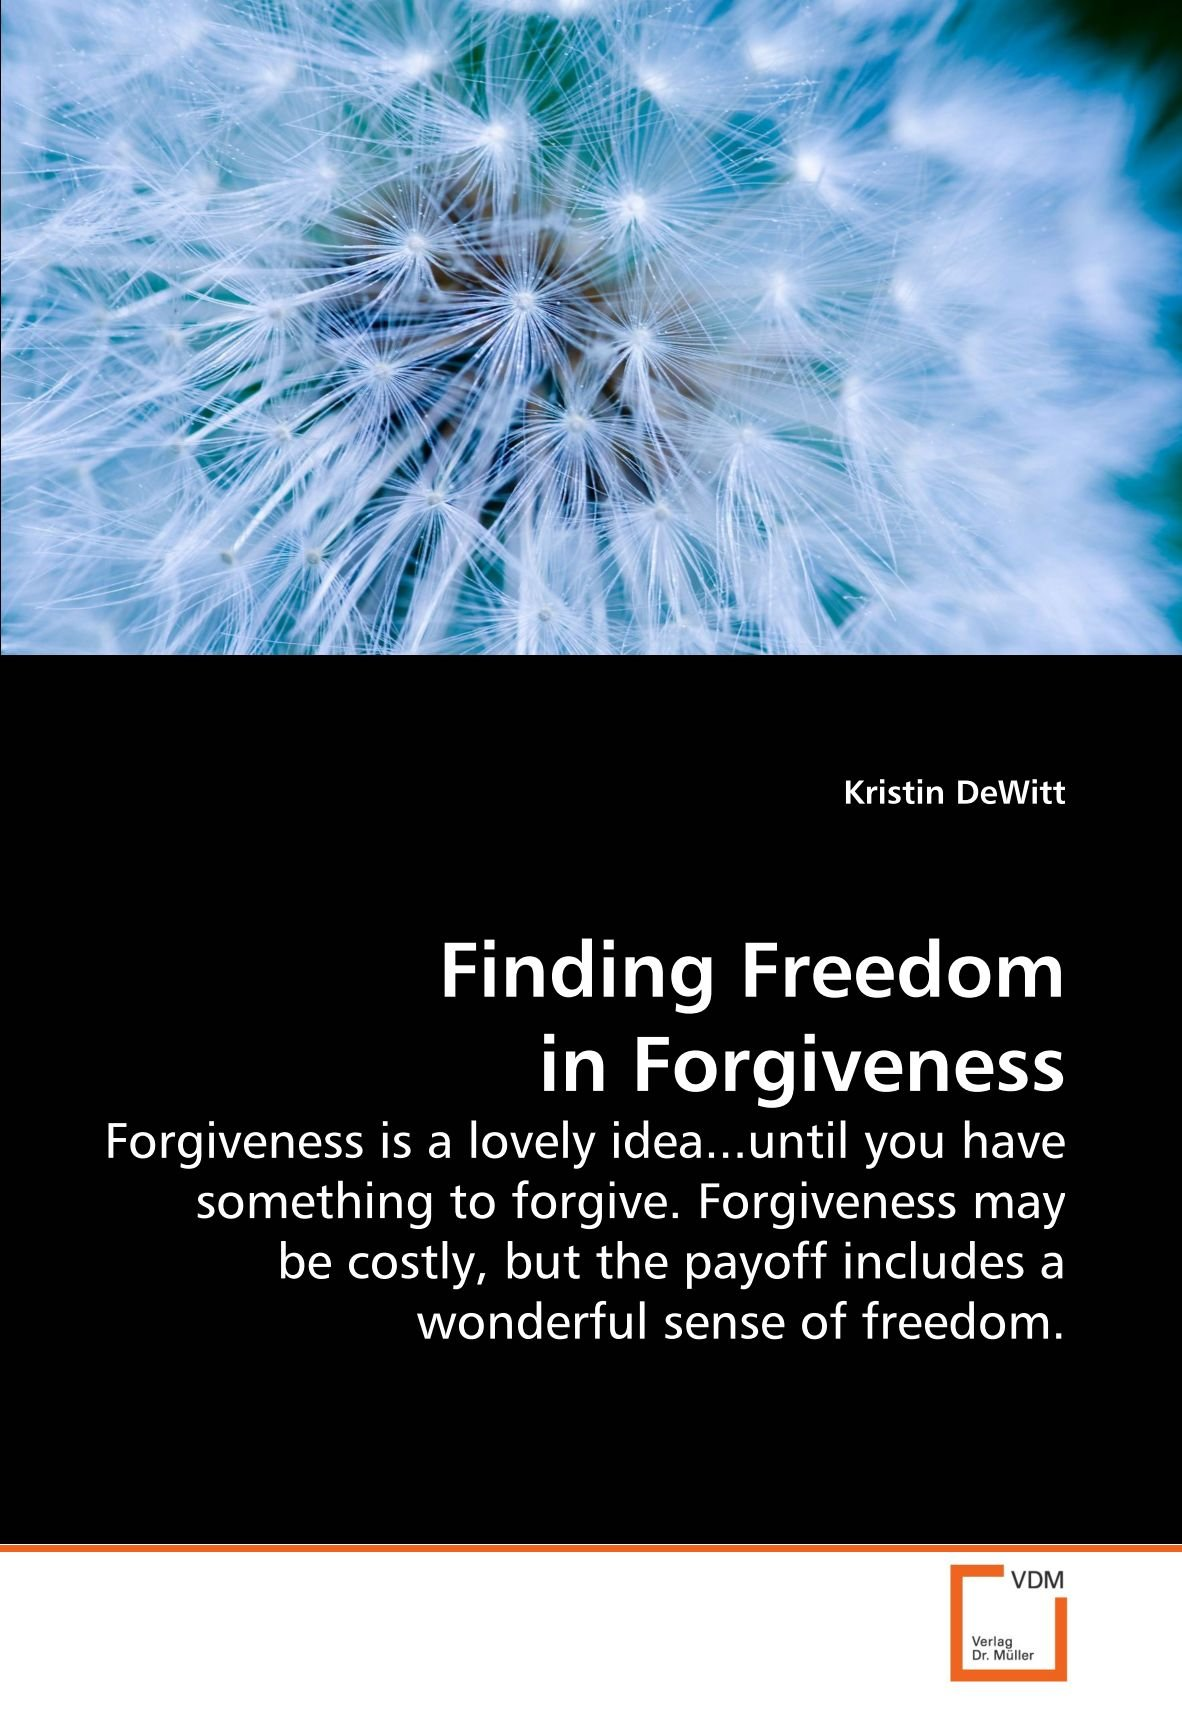 Download Finding Freedom in Forgiveness: Forgiveness is a lovely idea...until you have something to forgive. Forgiveness may be costly, but the payoff includes a wonderful sense of freedom. PDF